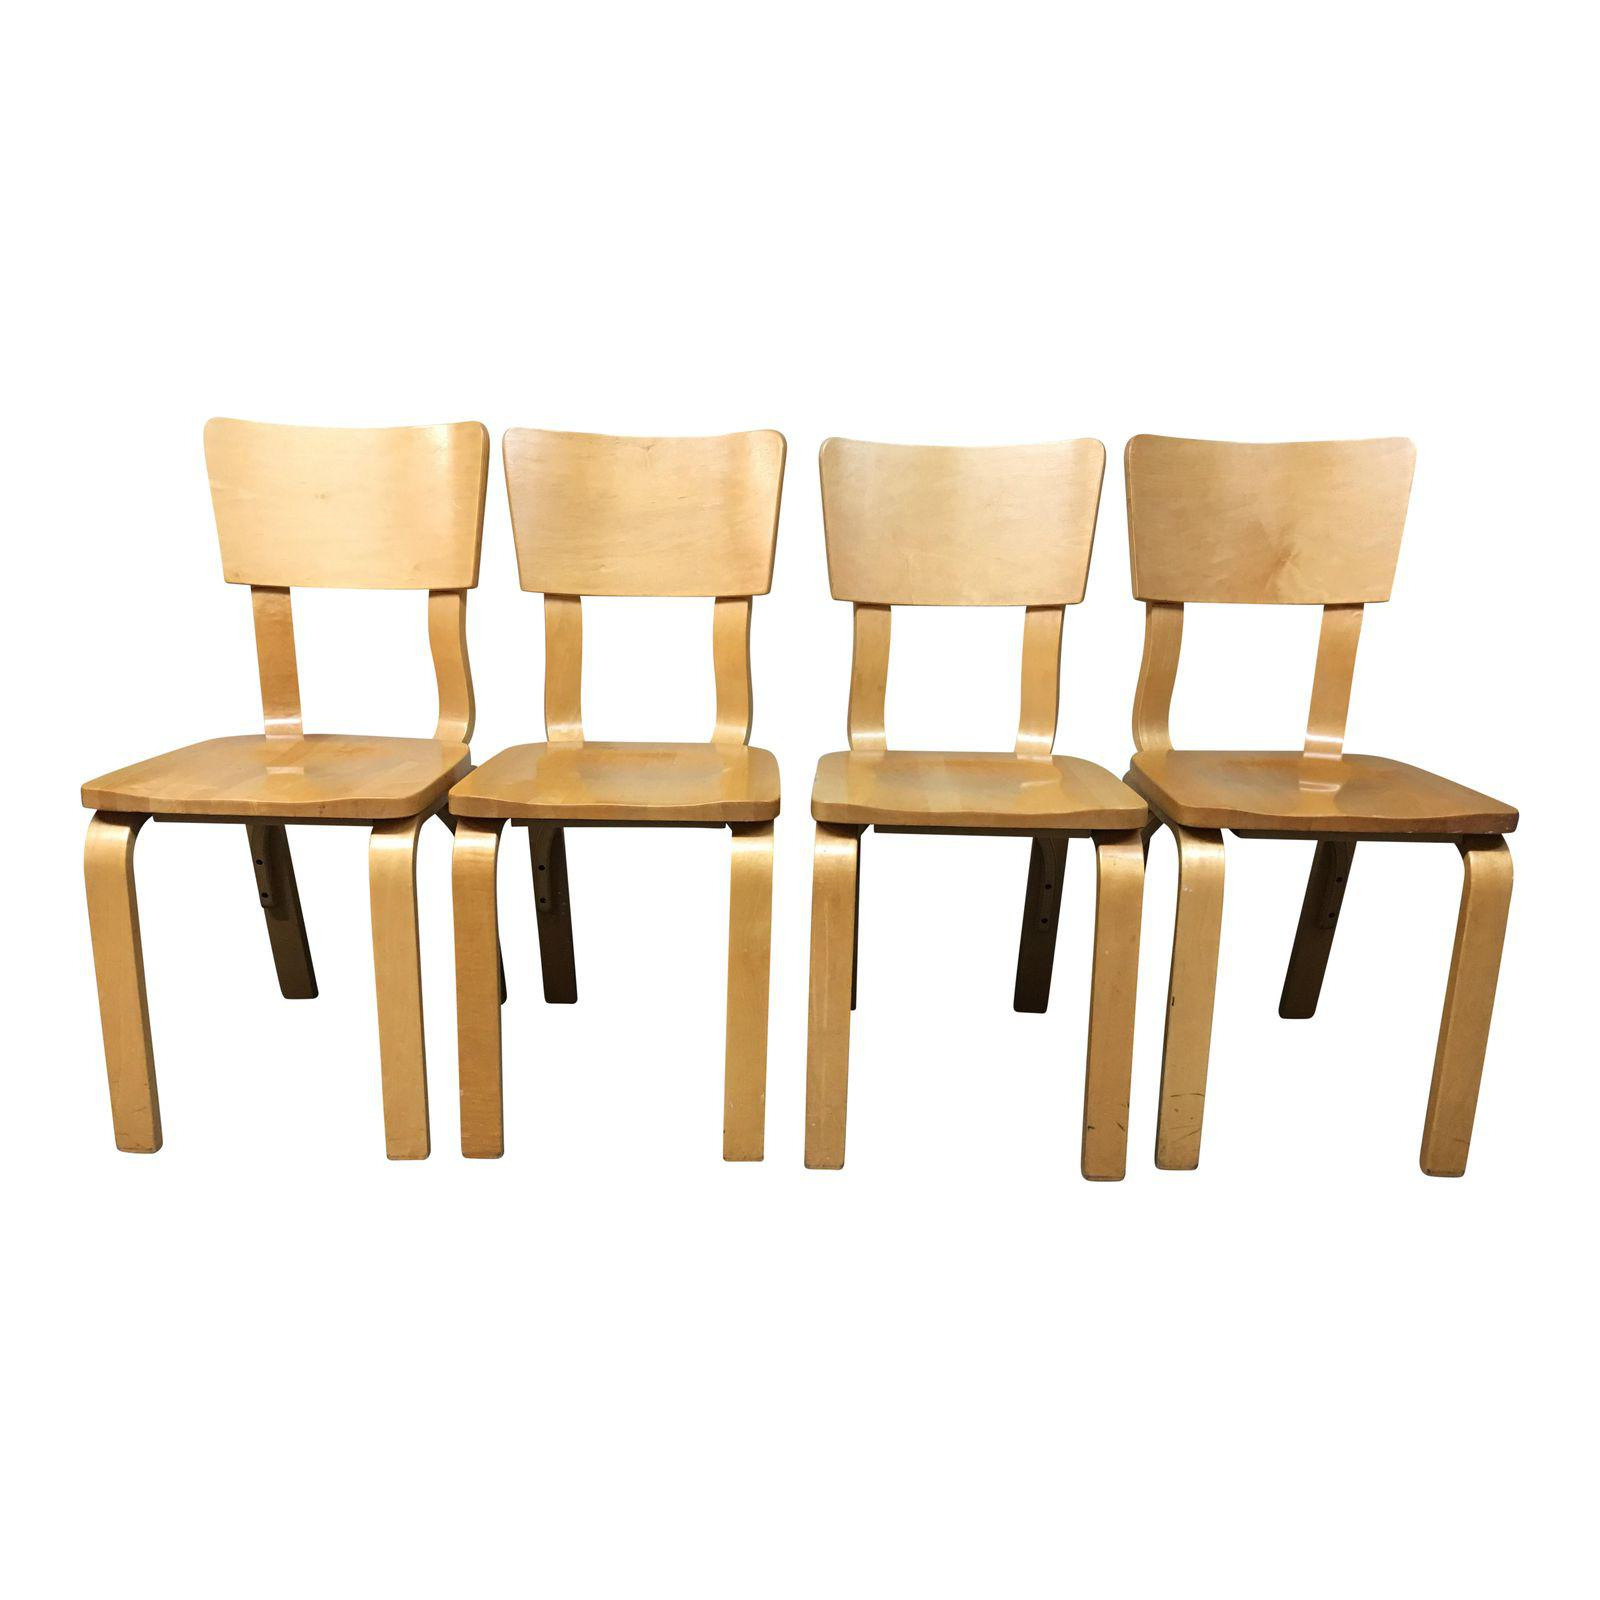 Wondrous Thonet Bentwood Dining Chairs Set Of 4 Design Plus Gallery Gmtry Best Dining Table And Chair Ideas Images Gmtryco